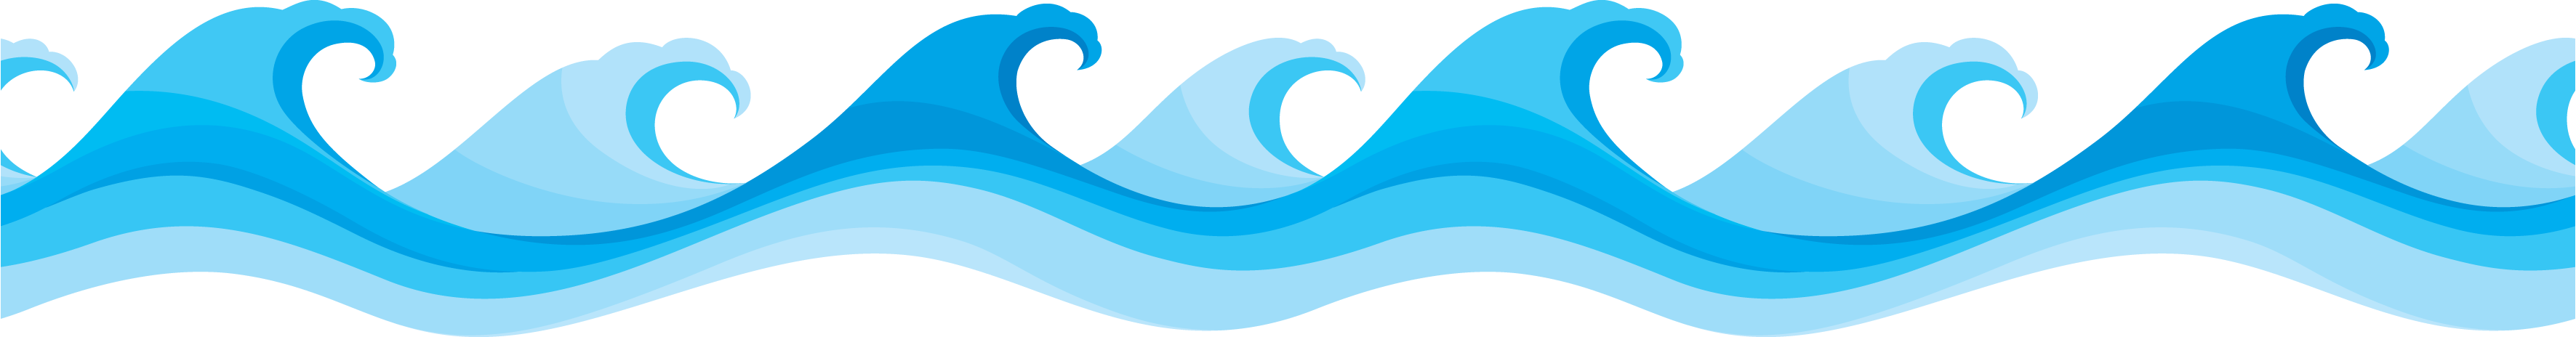 Lodging near cowabunga bay. Waves clipart river wave